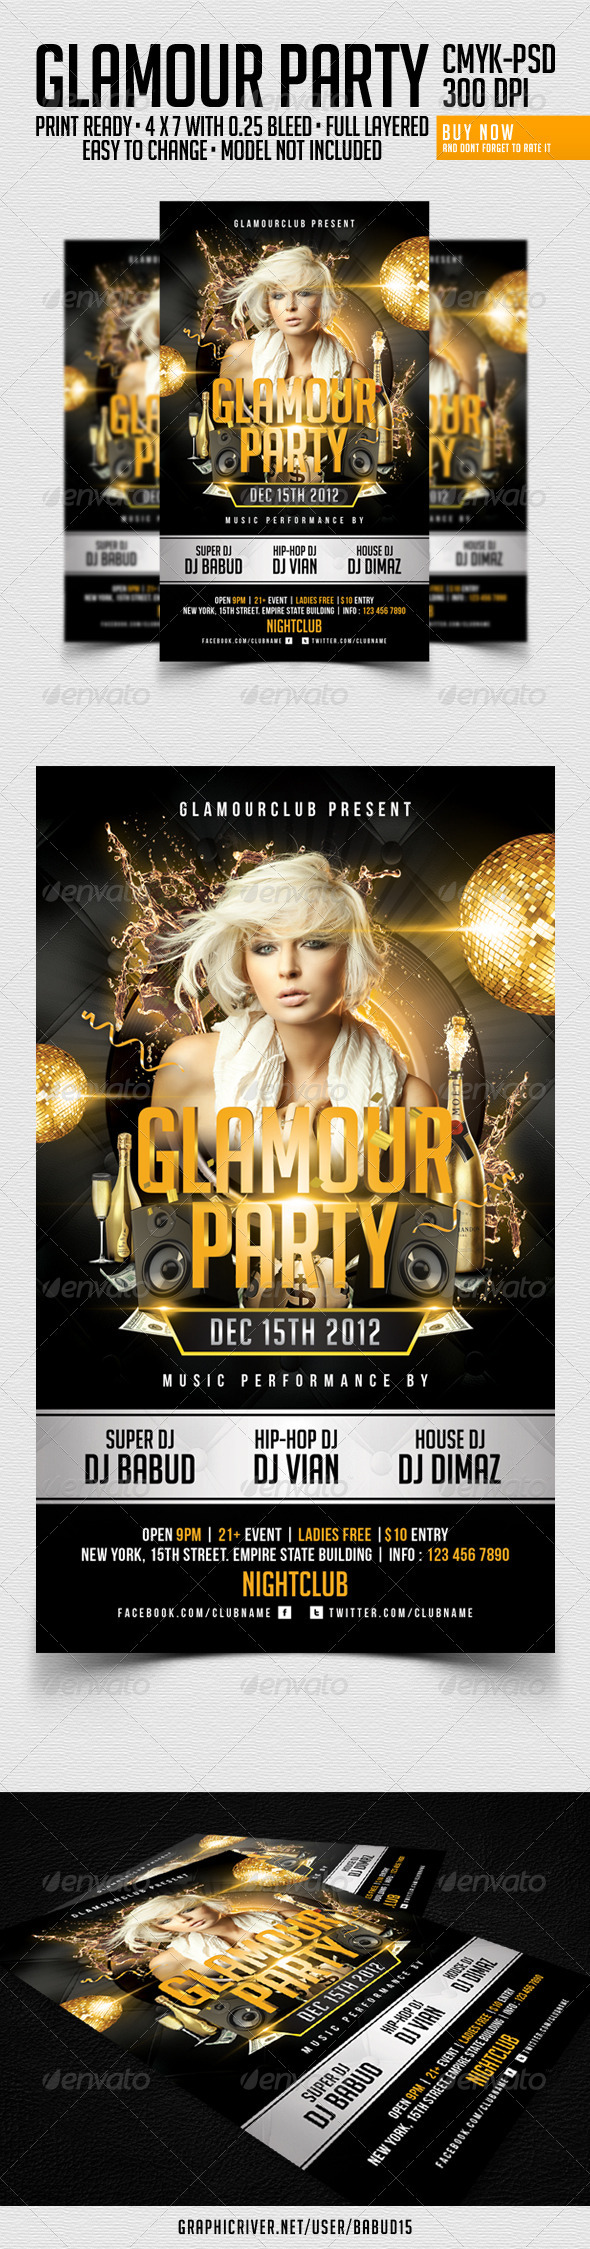 GraphicRiver Glamour Party Flyer Template 3411956